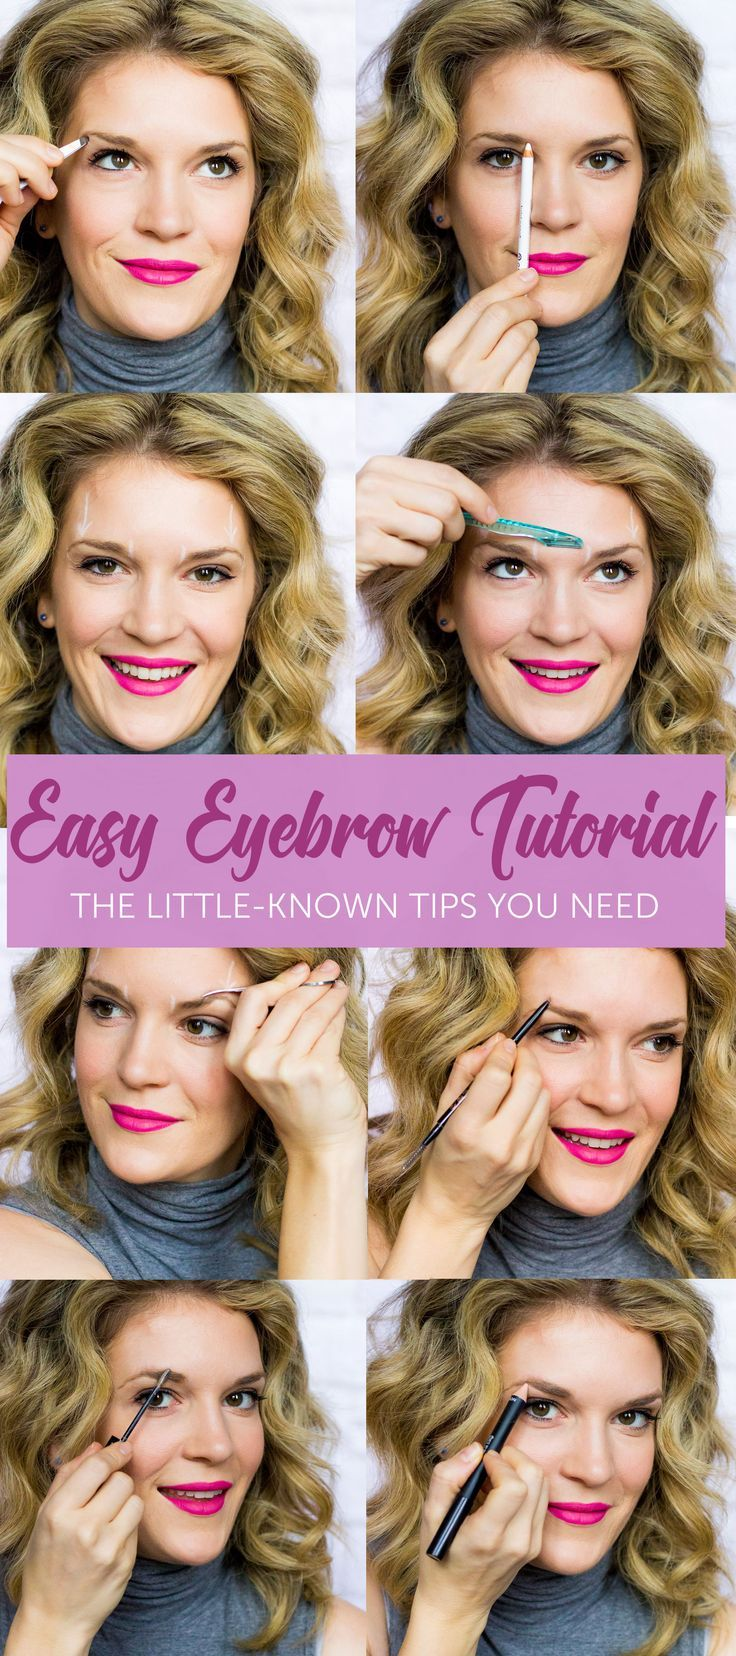 EASY EYEBROW TUTORIAL | BROWS | EASY MAKEUP TUTORIALS | EASY MAKEUP LOOKS | MAKEUP TIPS AND TRICKS | HOW TO GROOM YOUR EYEBROWS | BELLE MEETS WORLD | HOW TO DO YOUR EYEBROWS | EYEBROW TIPS